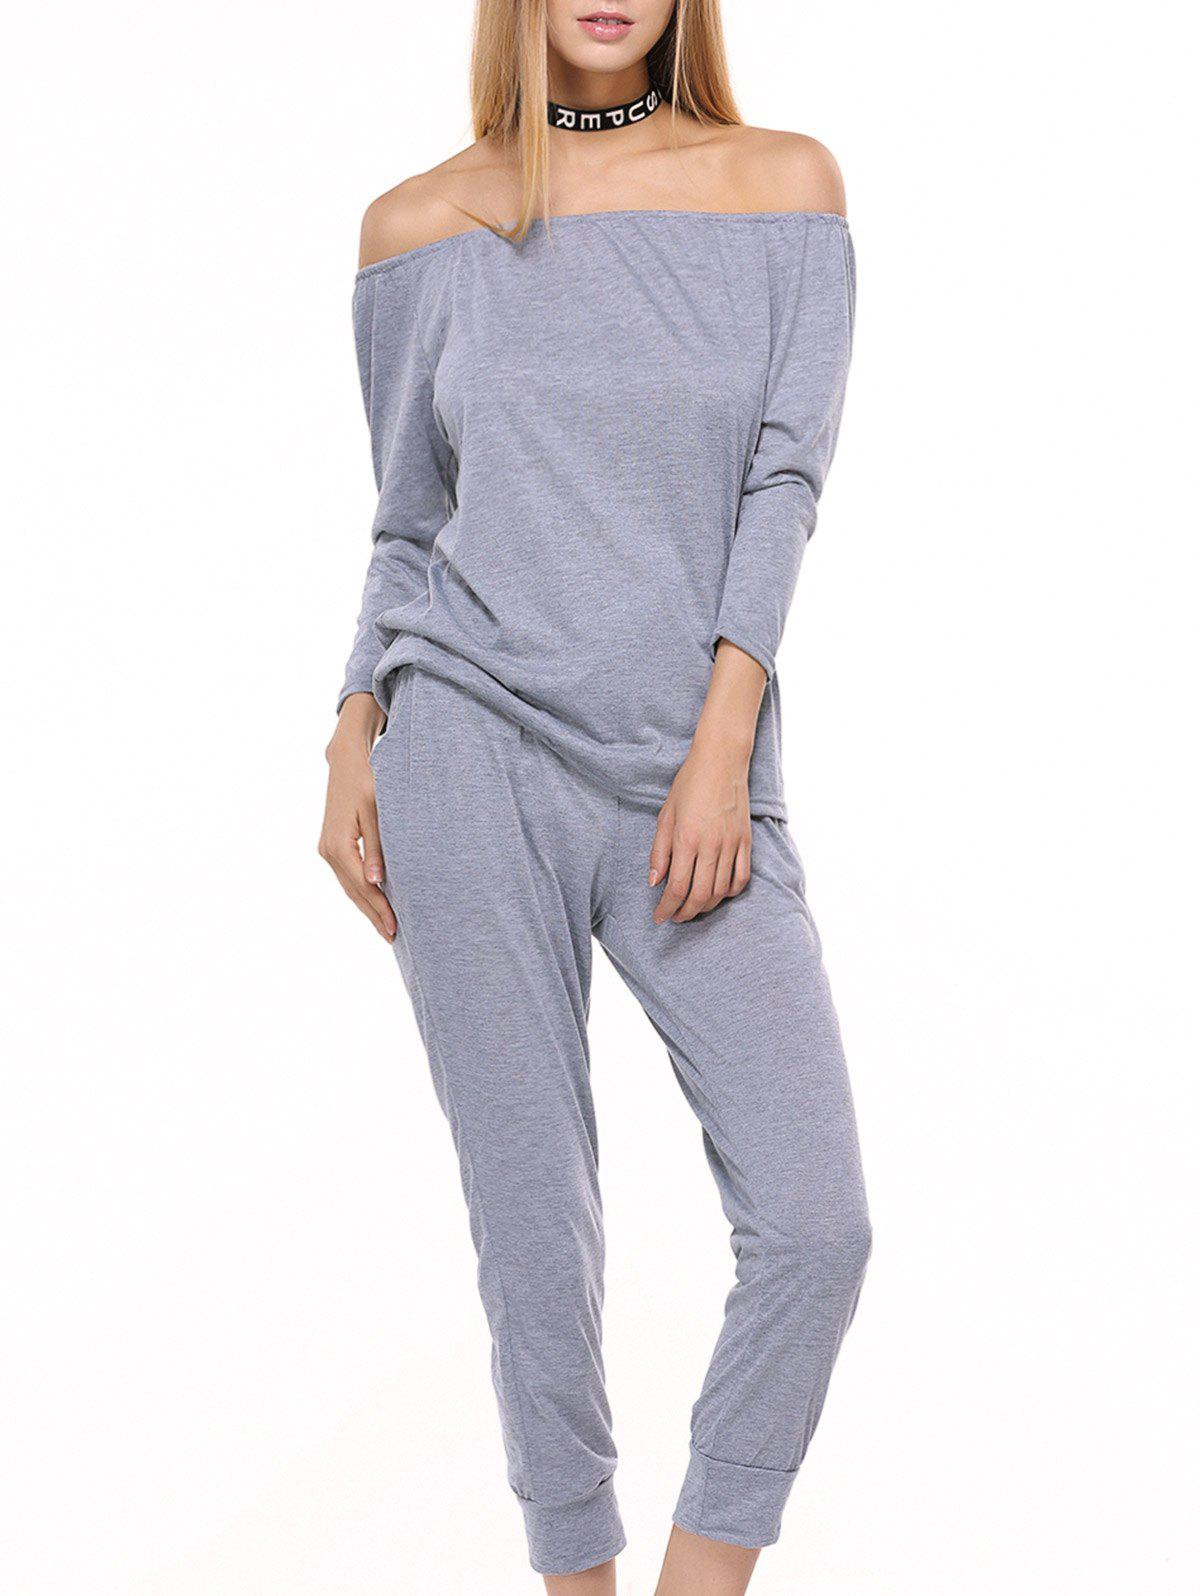 Fancy Off Shoulder Top with Drawstring Running Jogger Pants